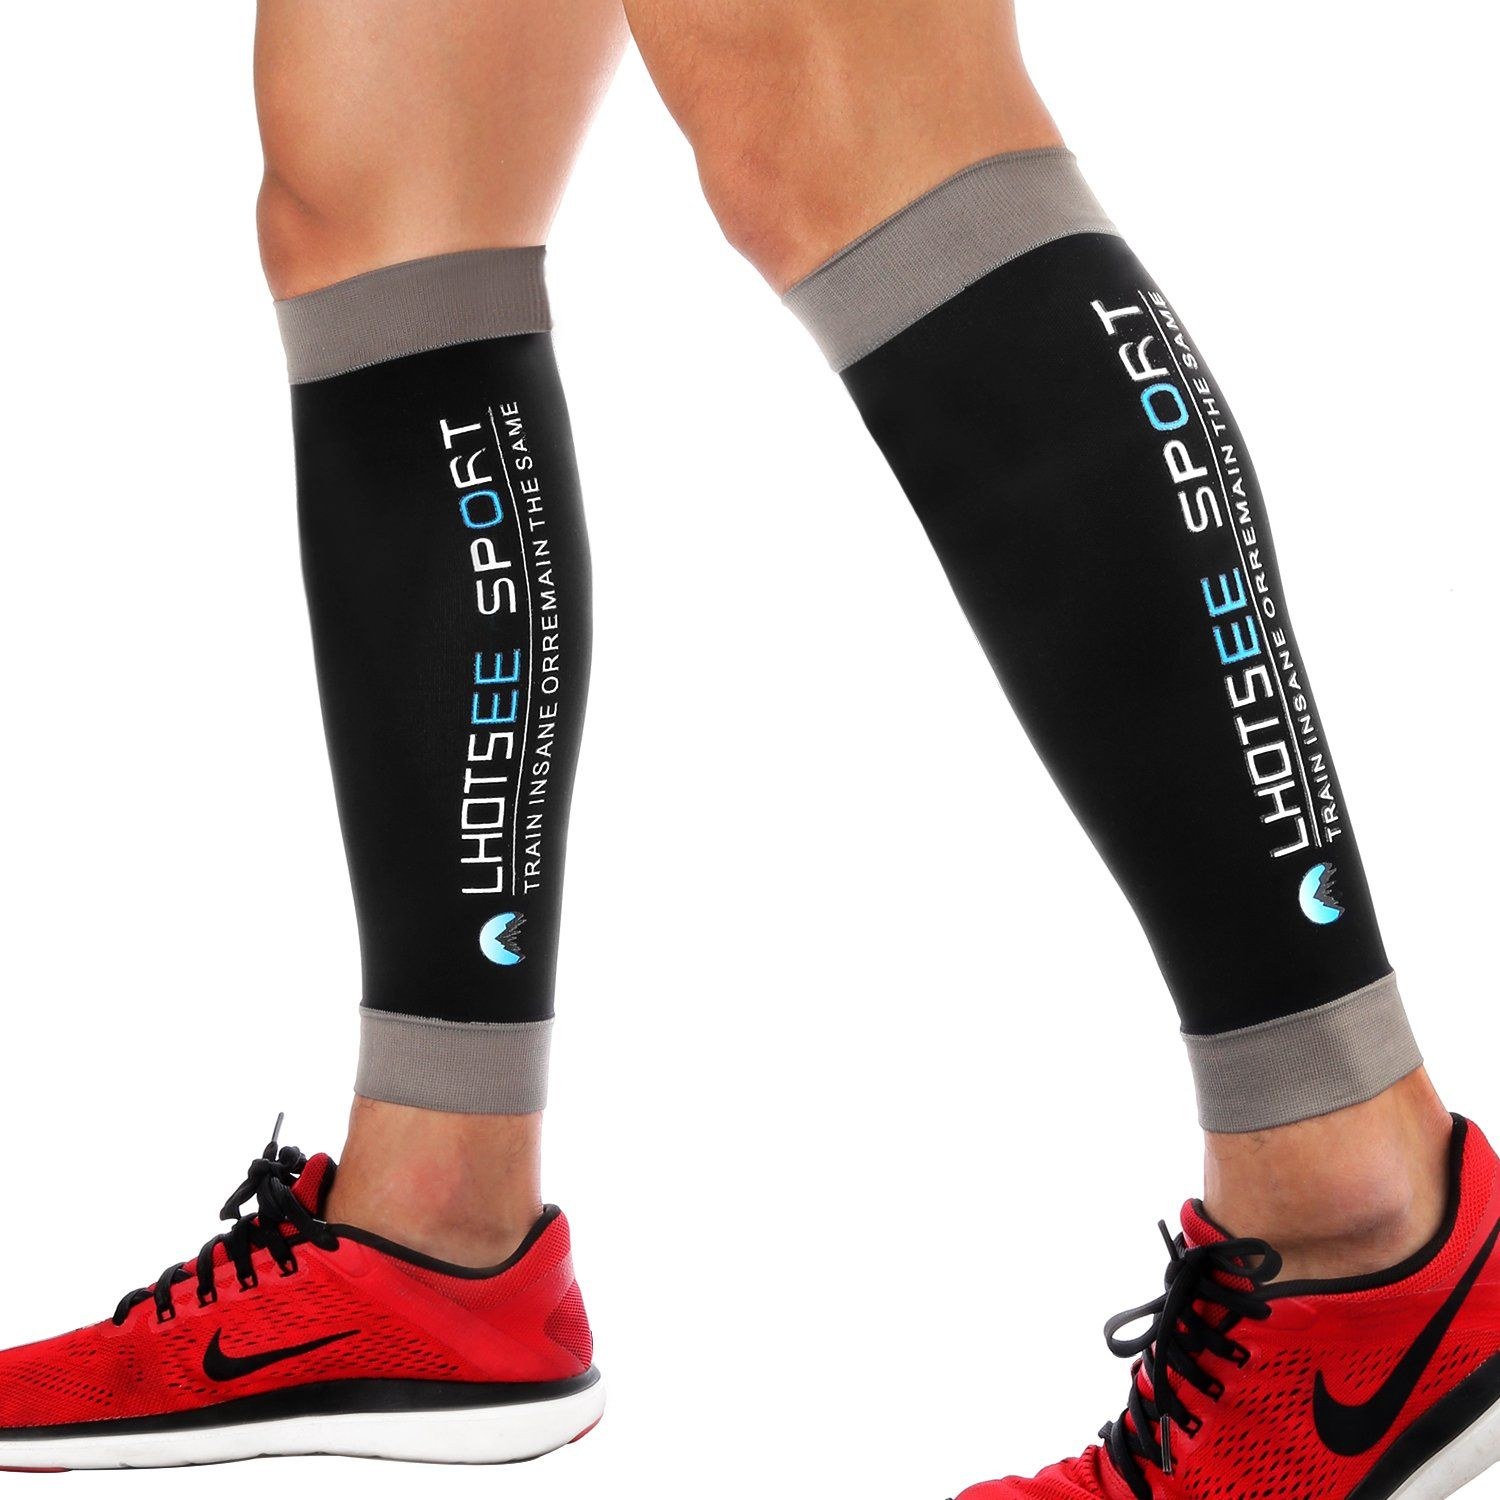 03b4b0a694 Best Compression Calf Sleeves for Women & Men One Pair, Lhotsee Leg  Compression Sleeves for